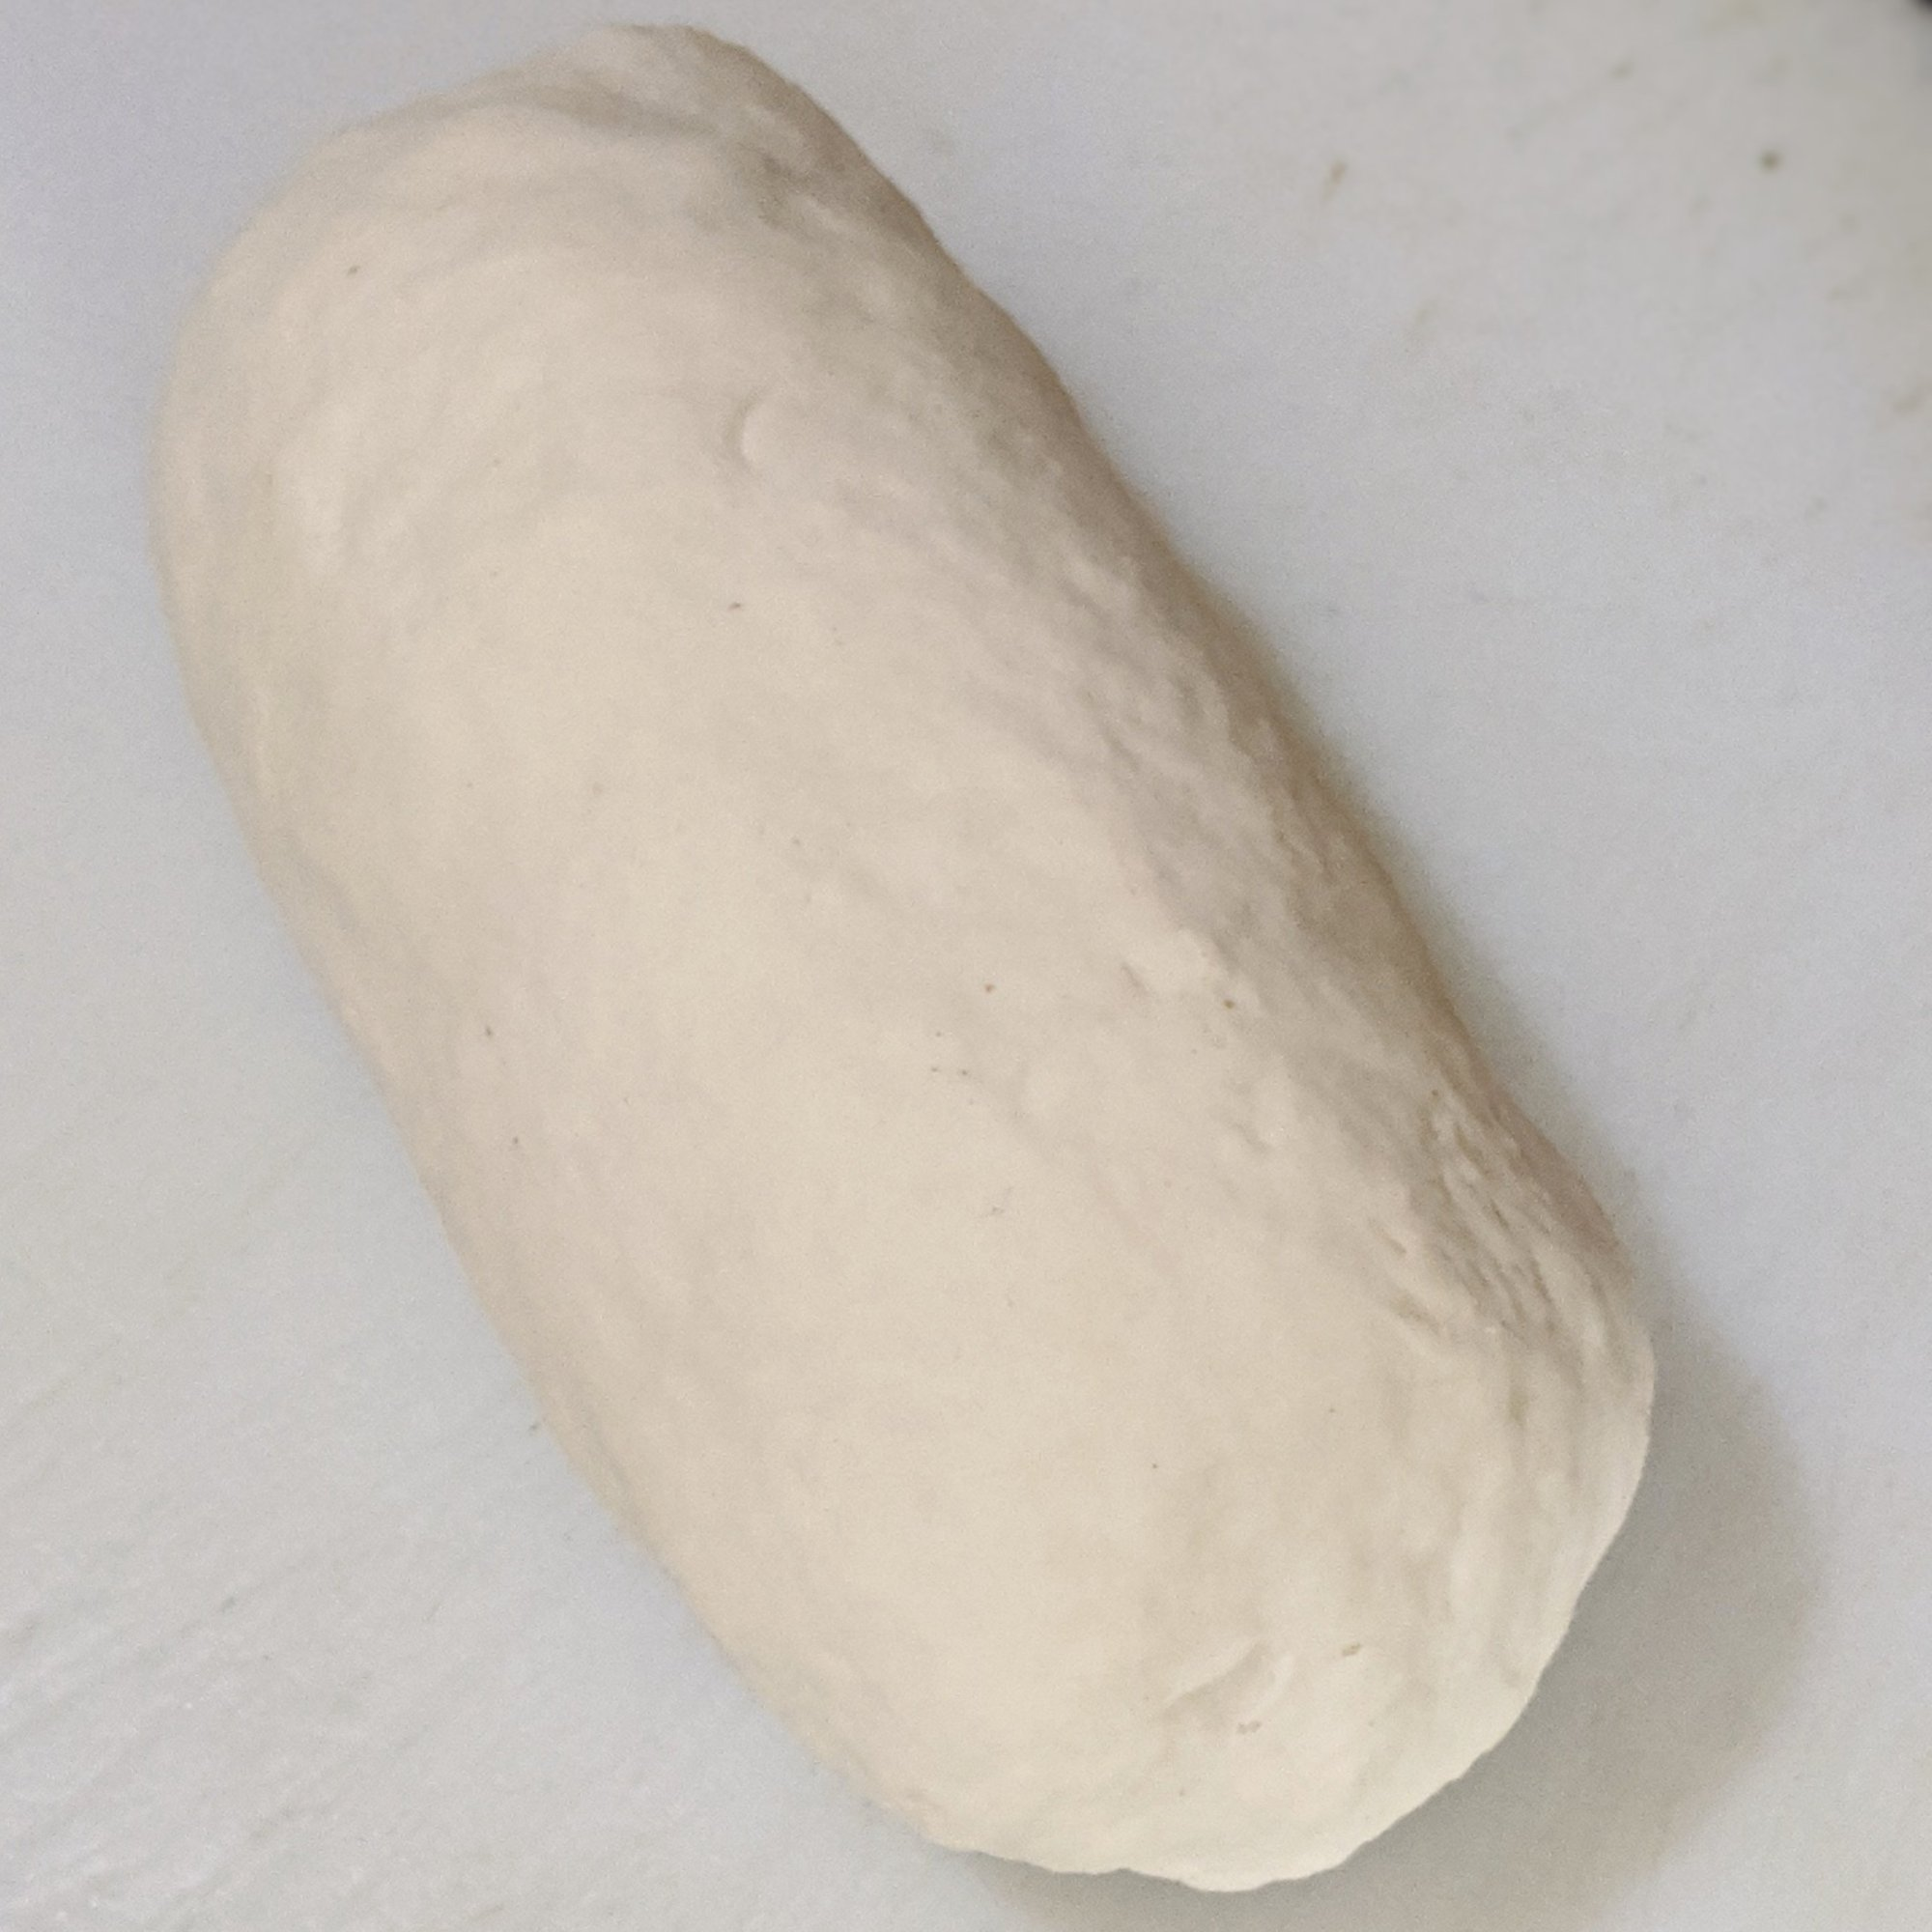 Dough for momo covering